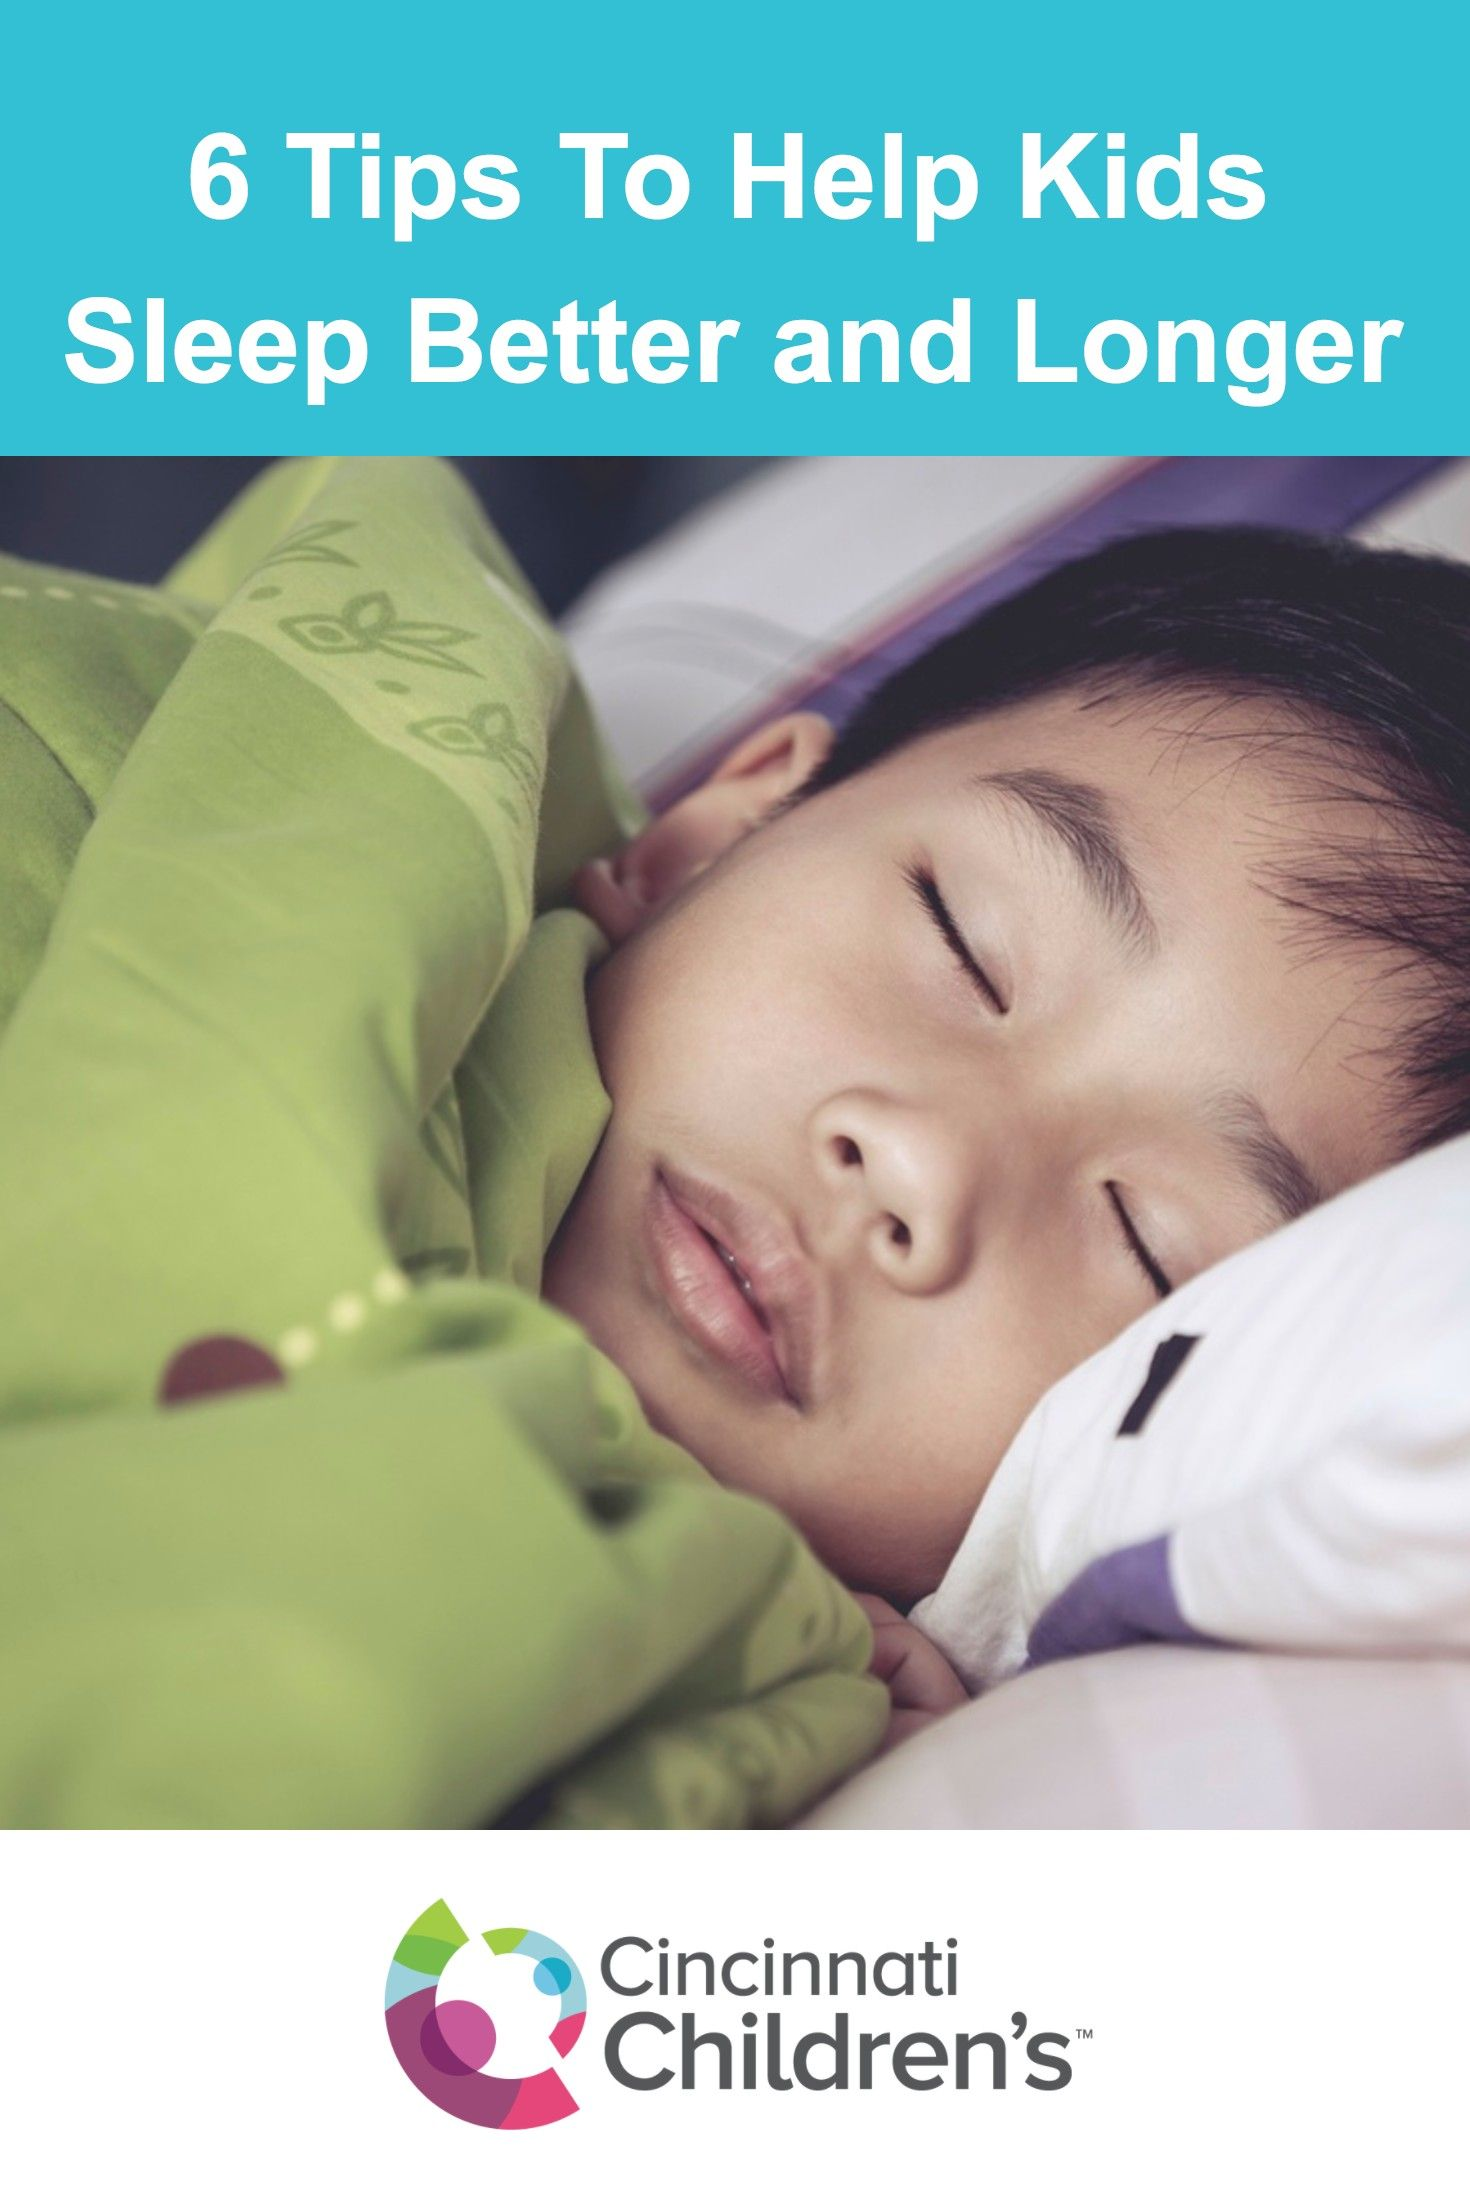 How To Help Kids Manage Sleep >> 6 Tips To Help Kids Sleep Better And Longer Children S